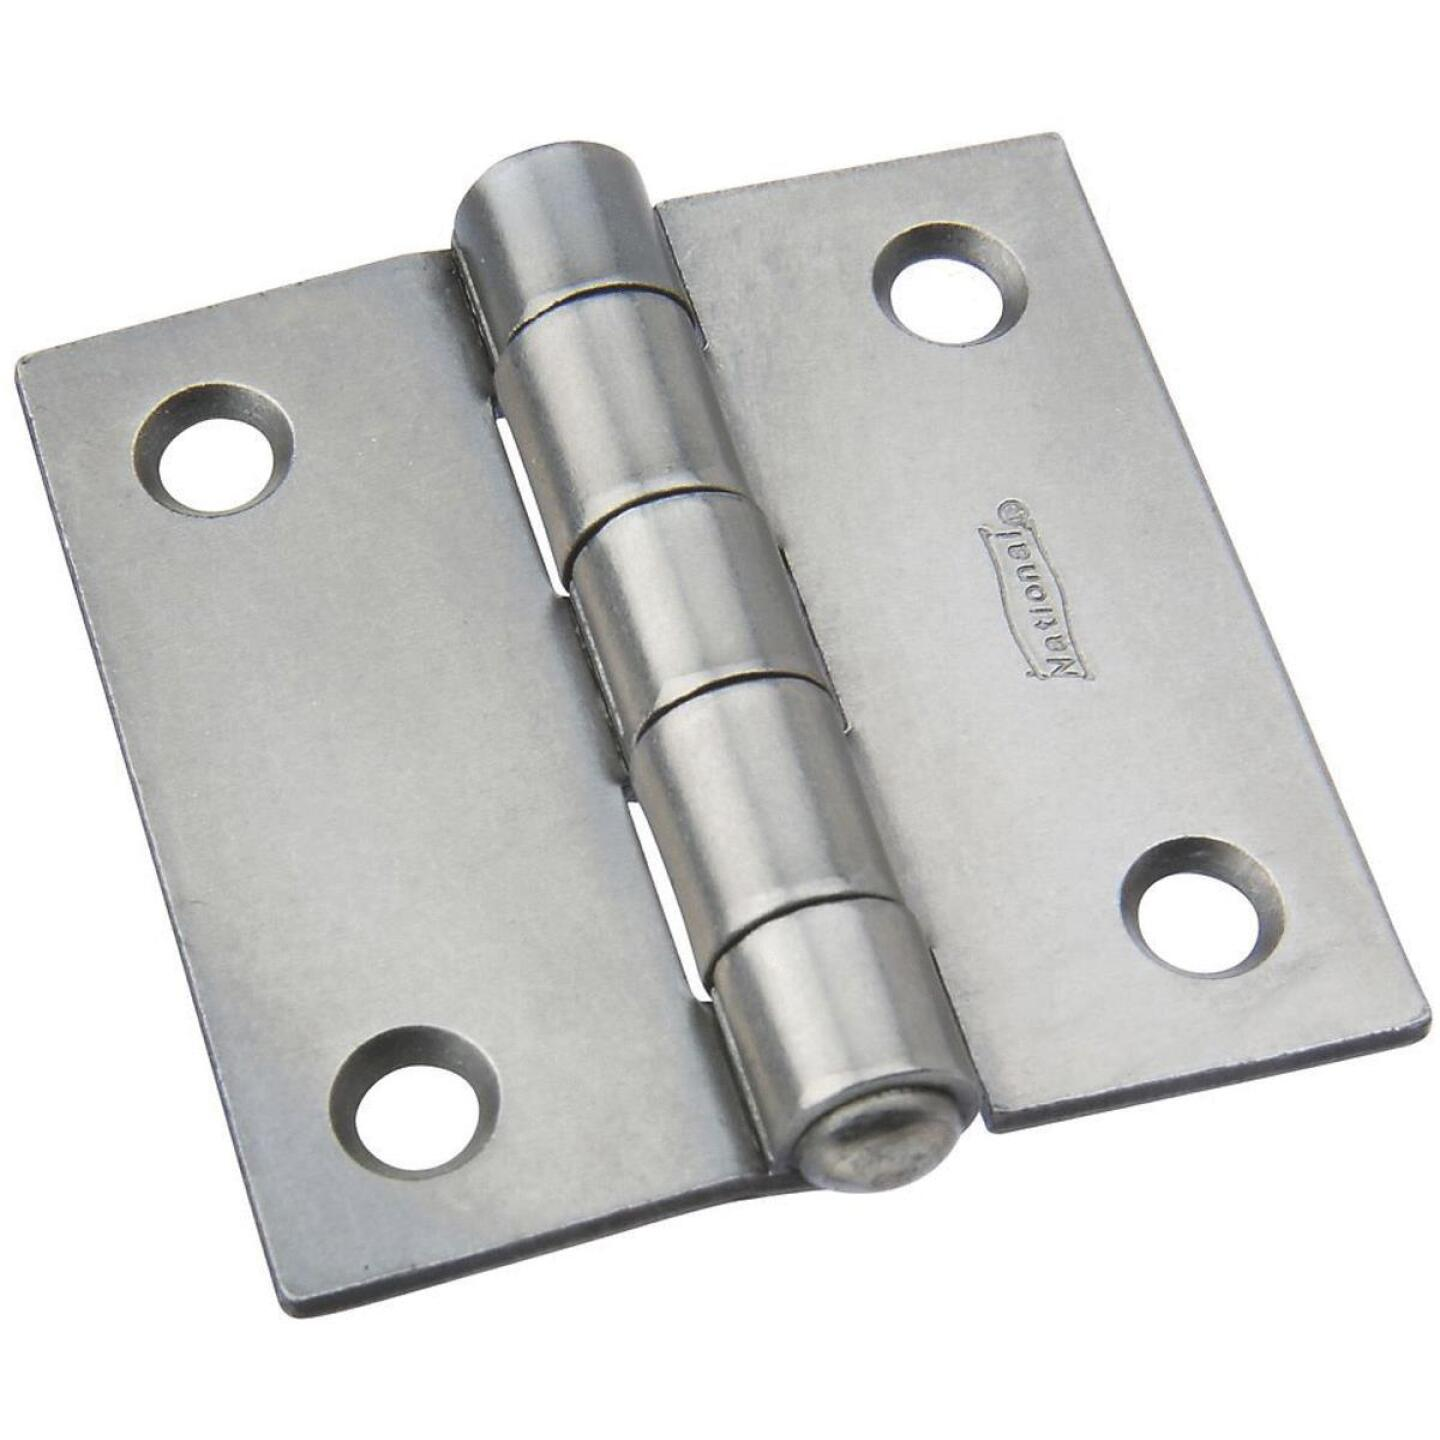 National 2 In. Square Steel Broad Door Hinge Image 1